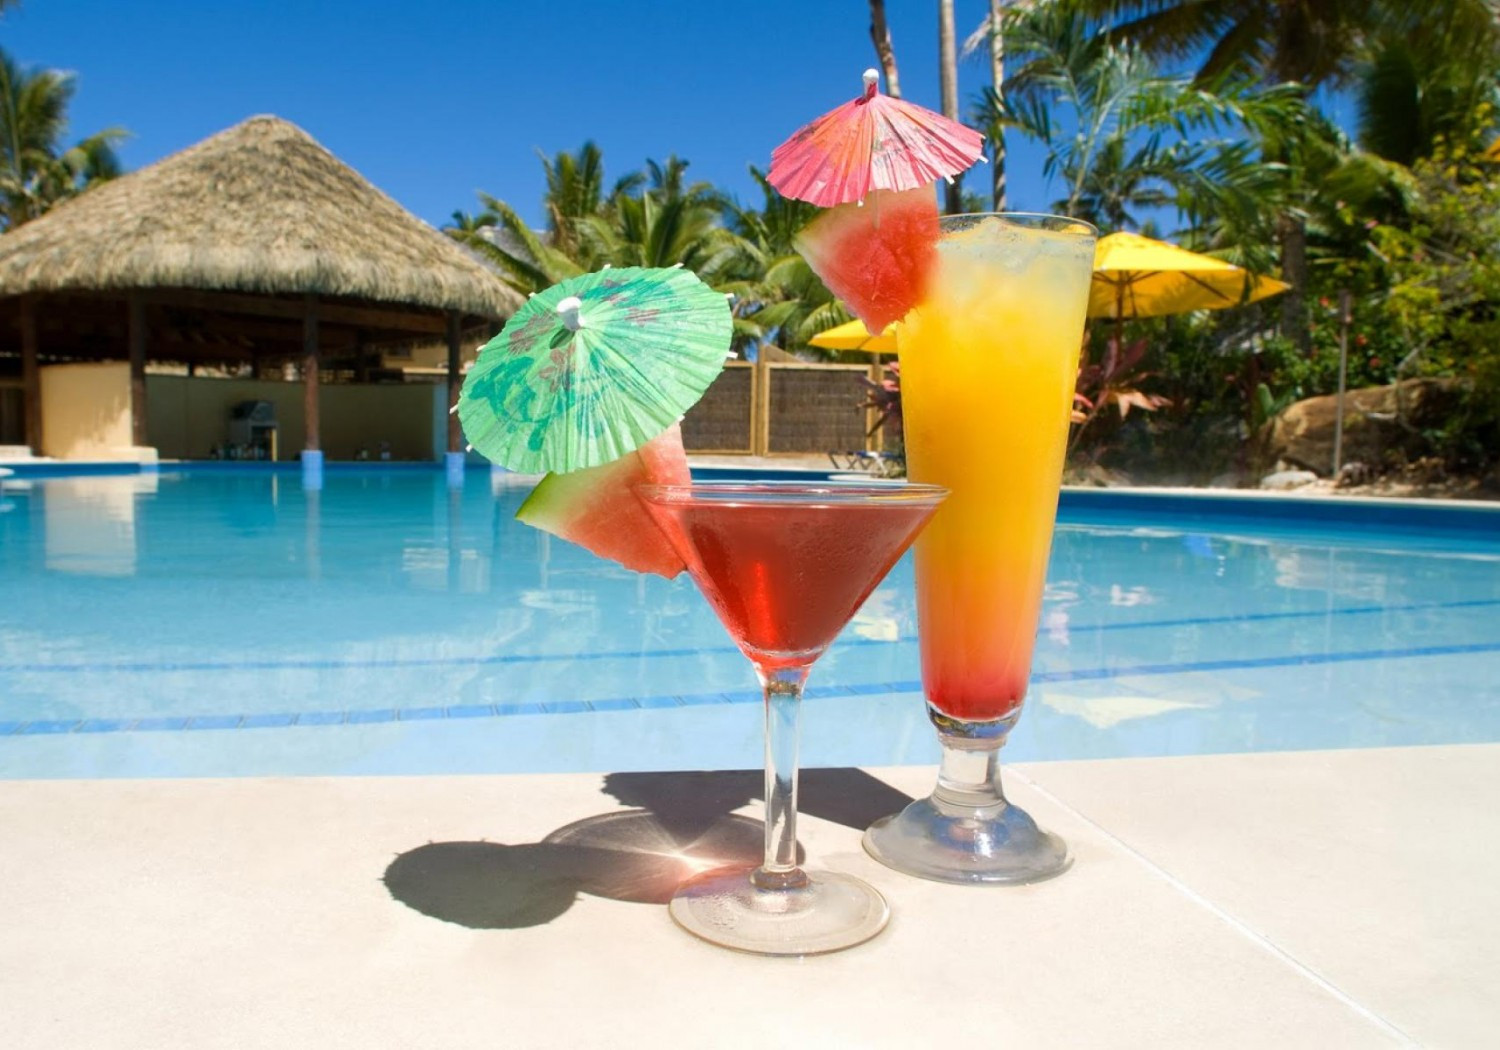 Ideas Pool Party  Pool Party Ideas for Adults CCSI International Inc